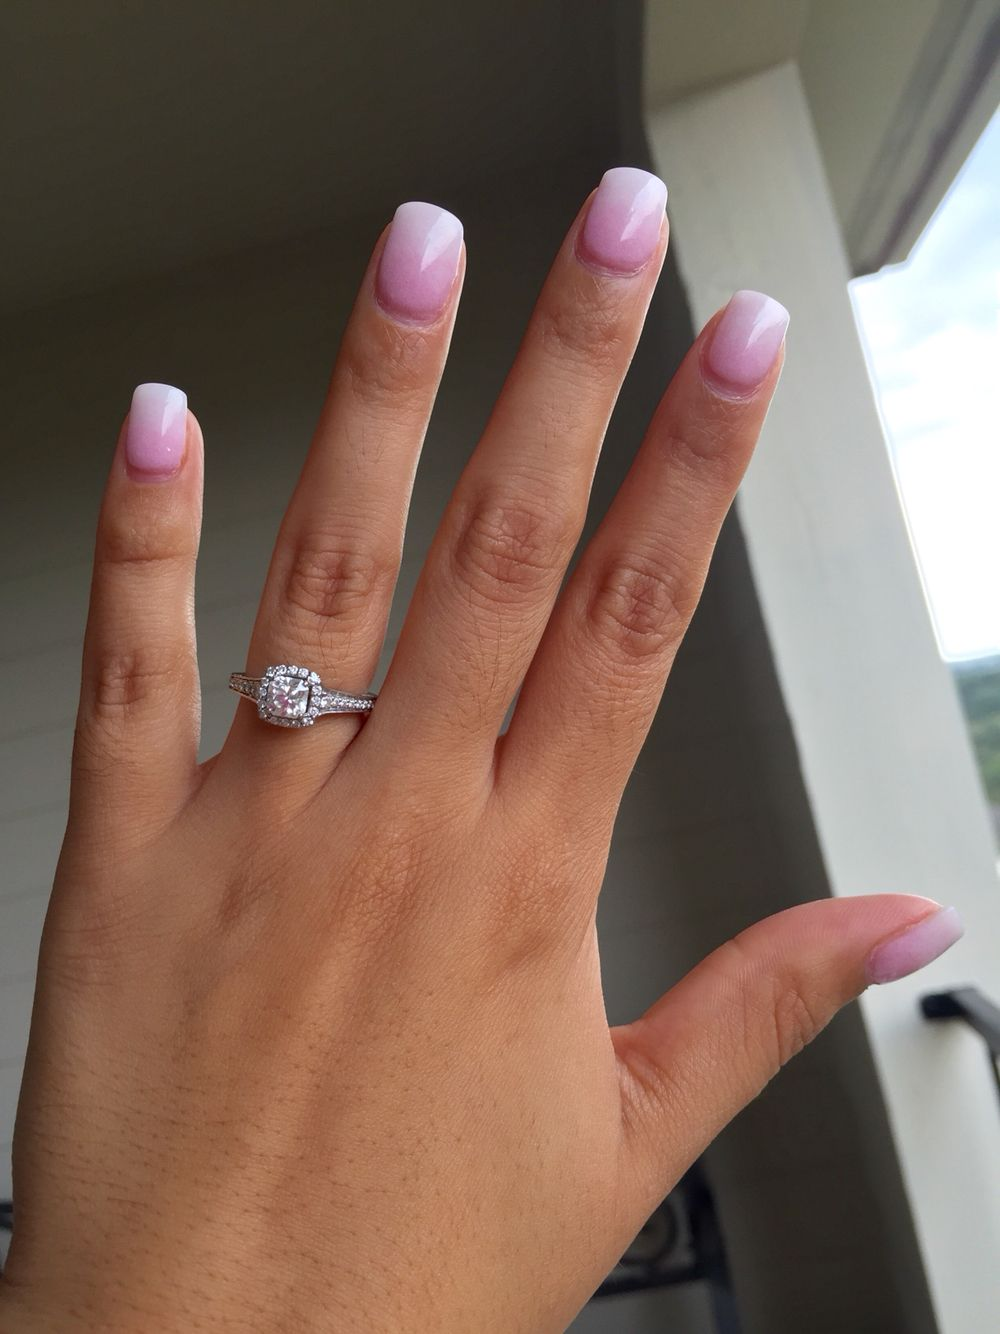 Powdered Gel Nails Design Vj Nails In Calgary Alberta: SNS Nails Pink And White Ombre